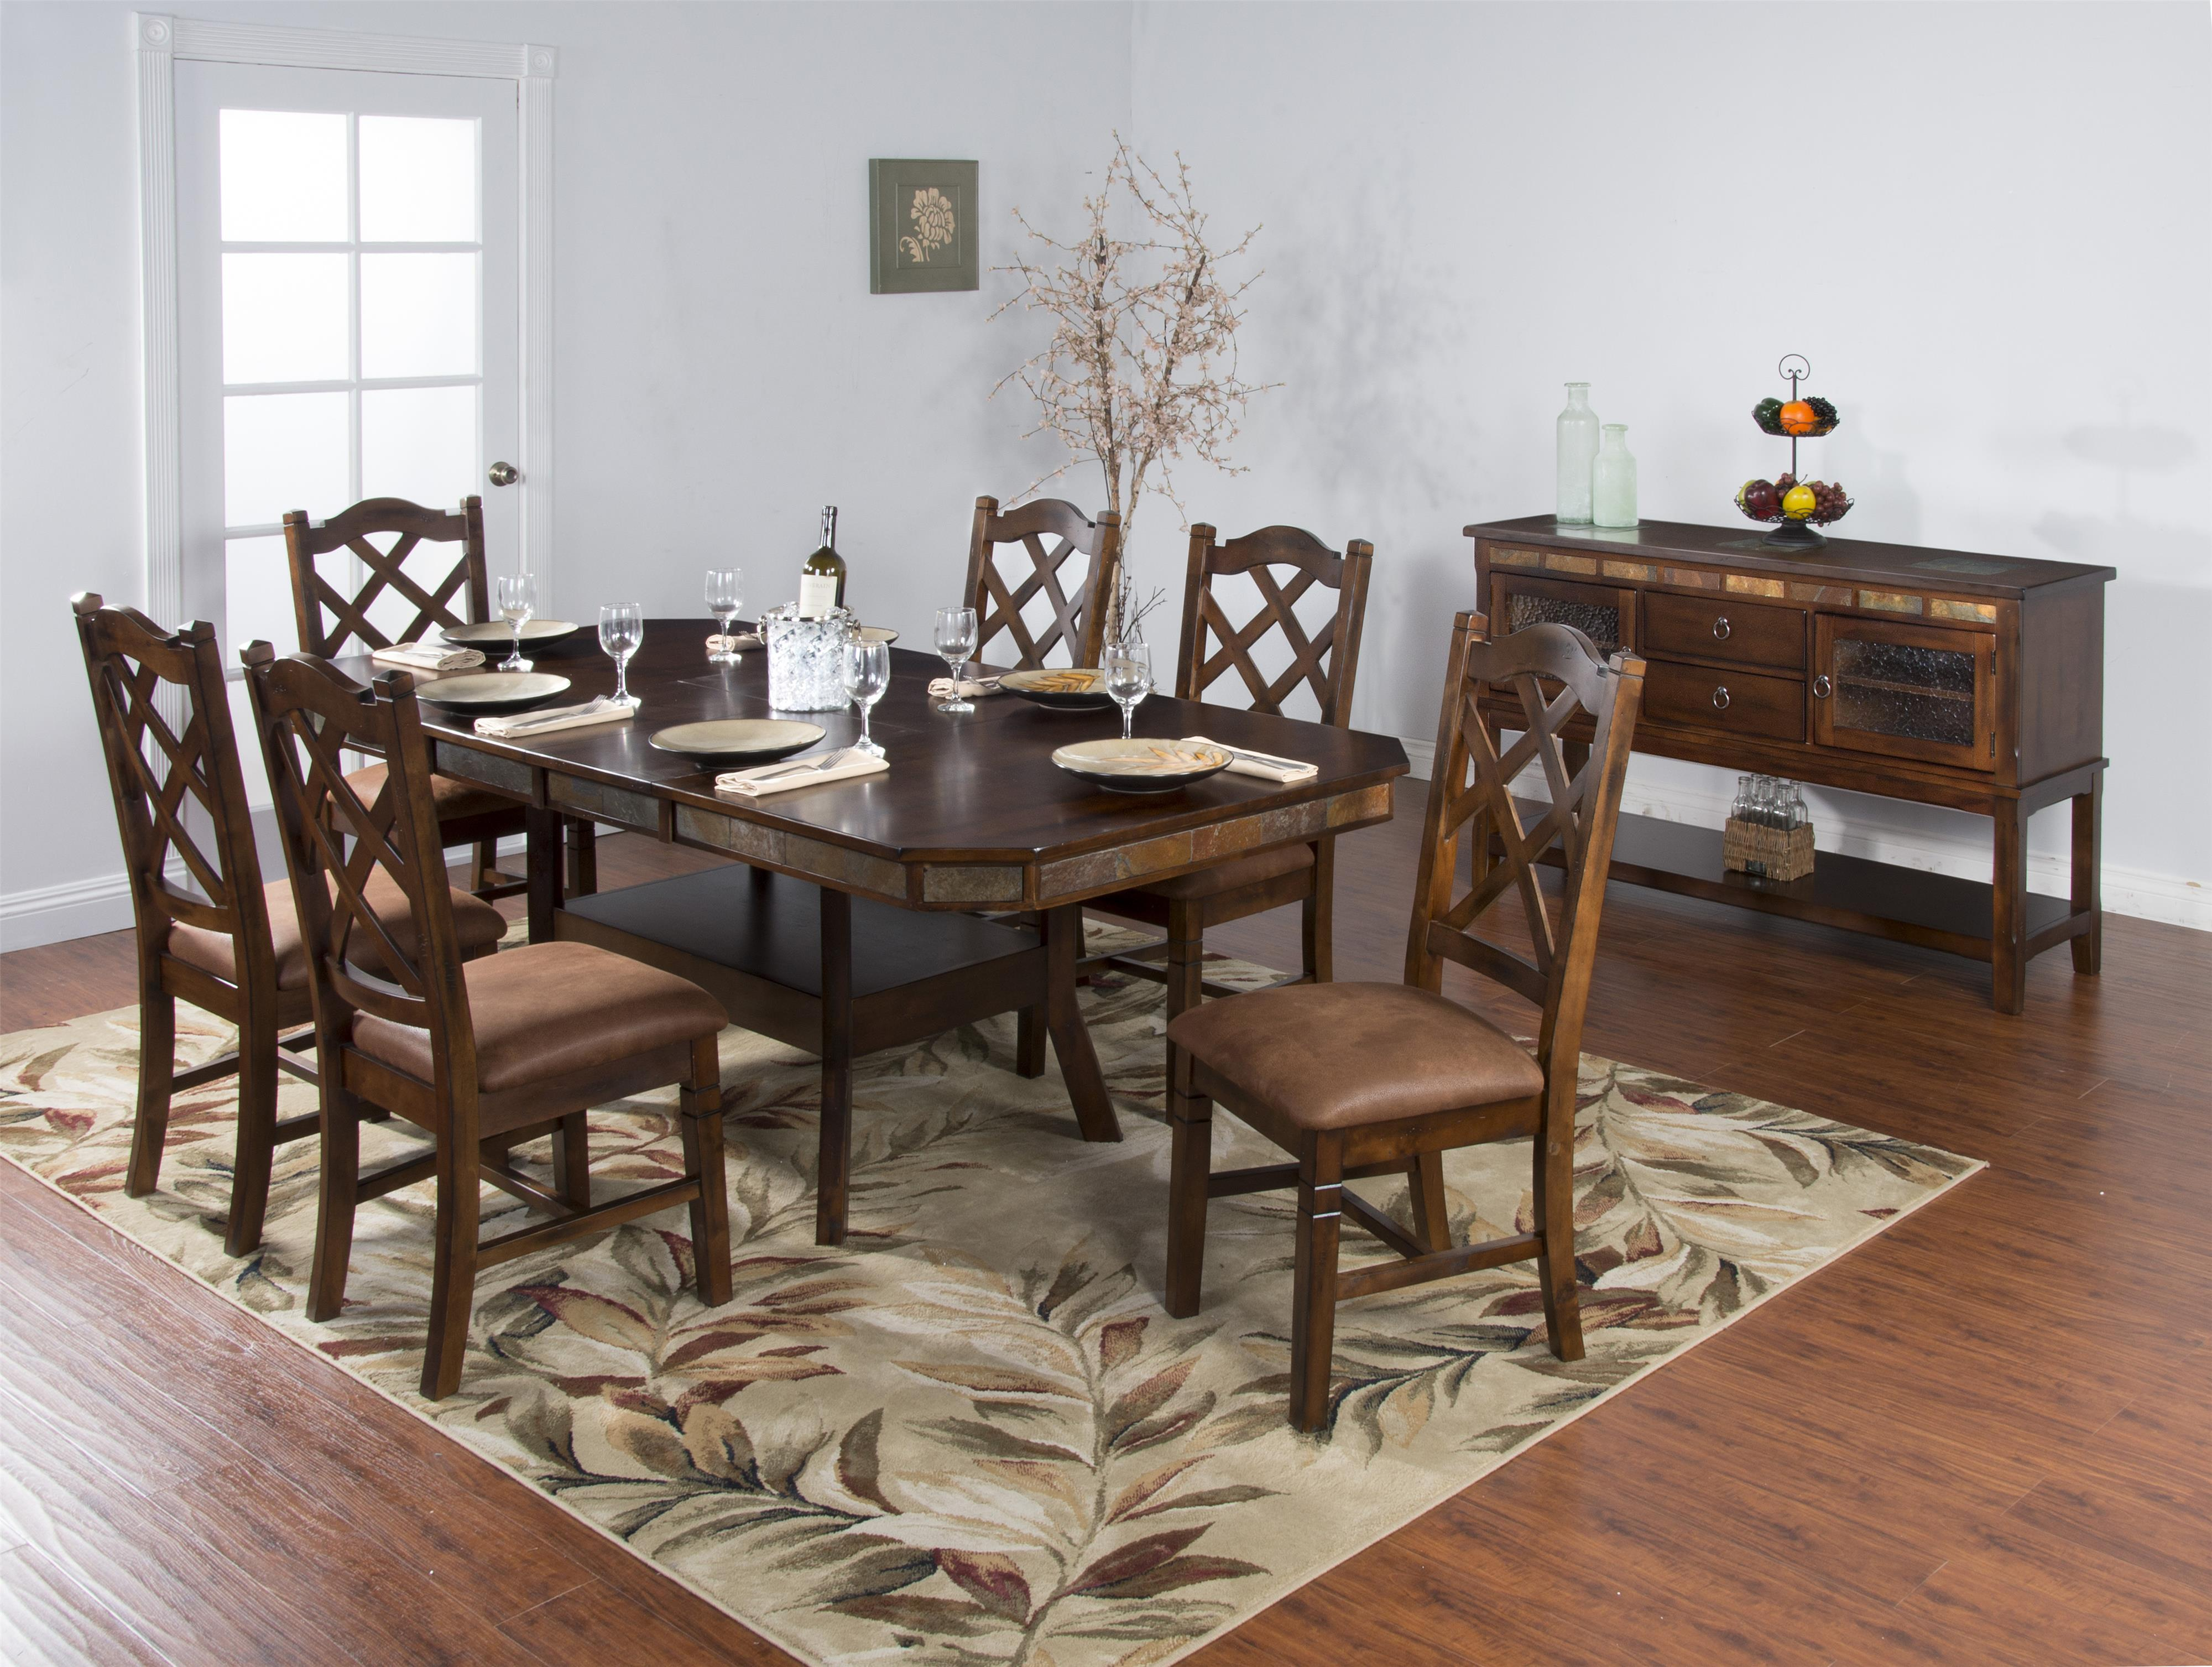 Sunny Designs Santa Fe Adjustable Height Dining Table w 2  : products2Fsunnydesigns2Fcolor2Fsante20fe 20dc1151dc b2 from www.furnitureappliancemart.com size 4000 x 3014 jpeg 1079kB